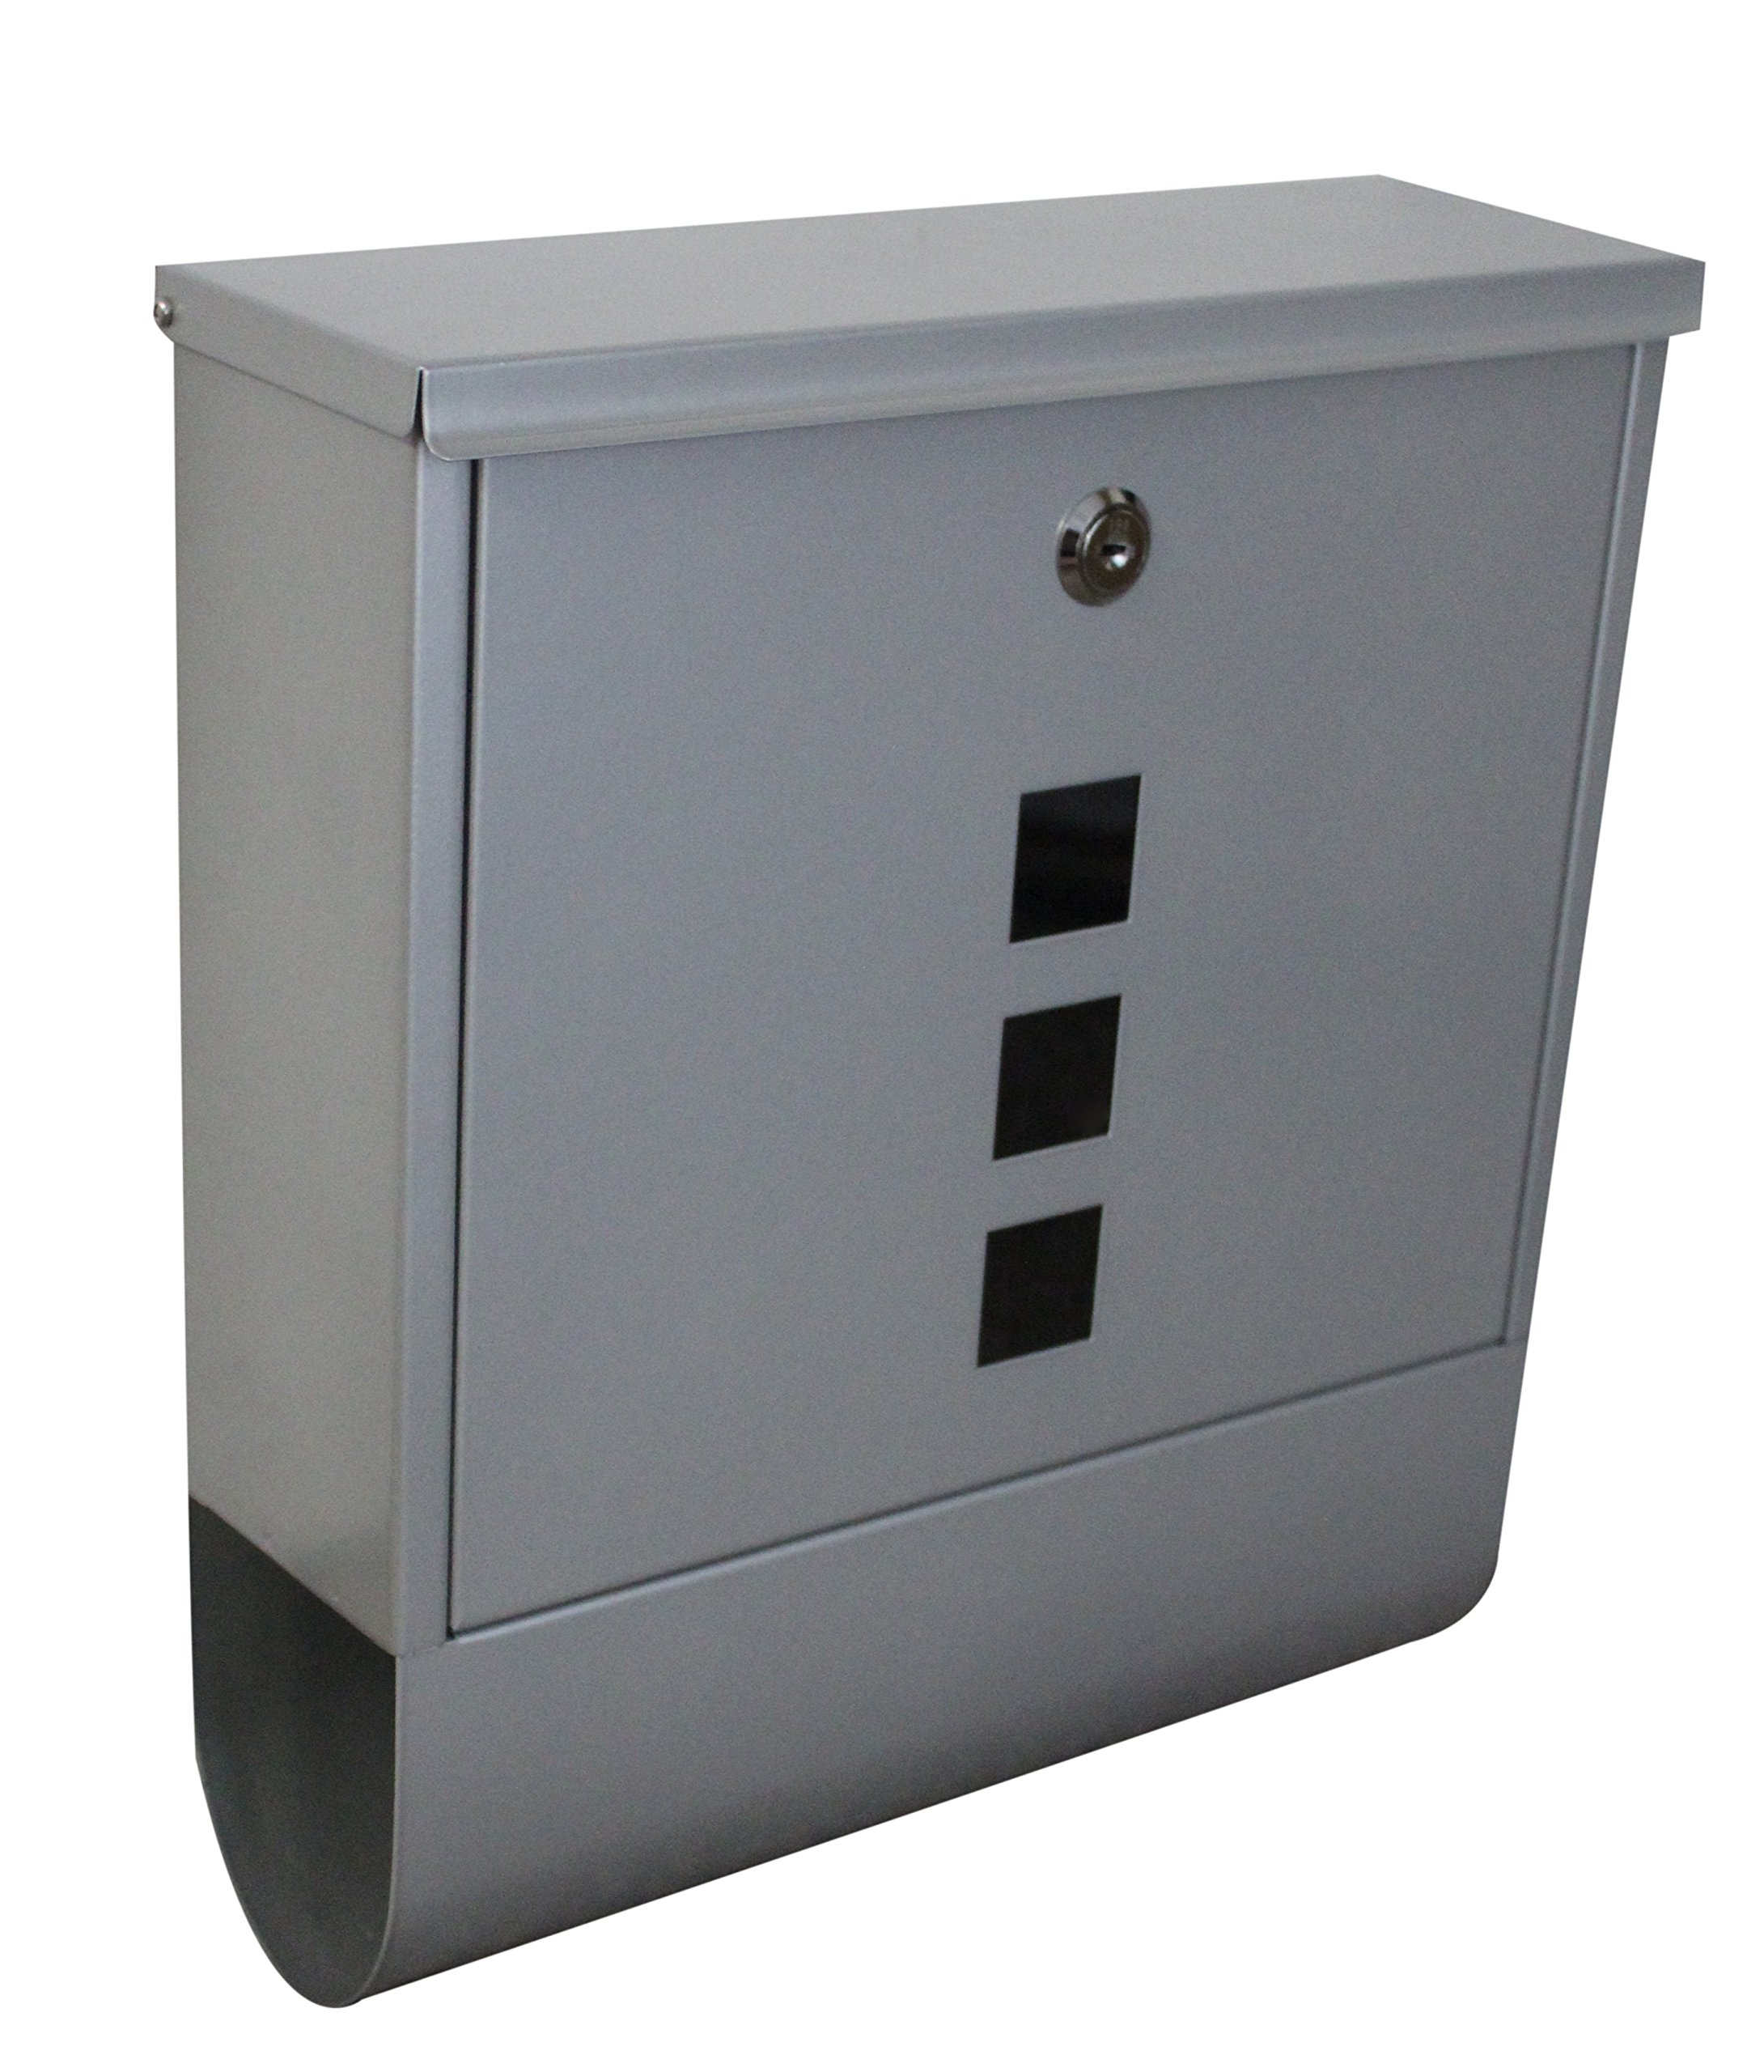 Locking Wall Mounted Mailbox - Silver Aluminum Locking Mail Box with Newspaper Slot - Residential/Commercial Security Mailbox